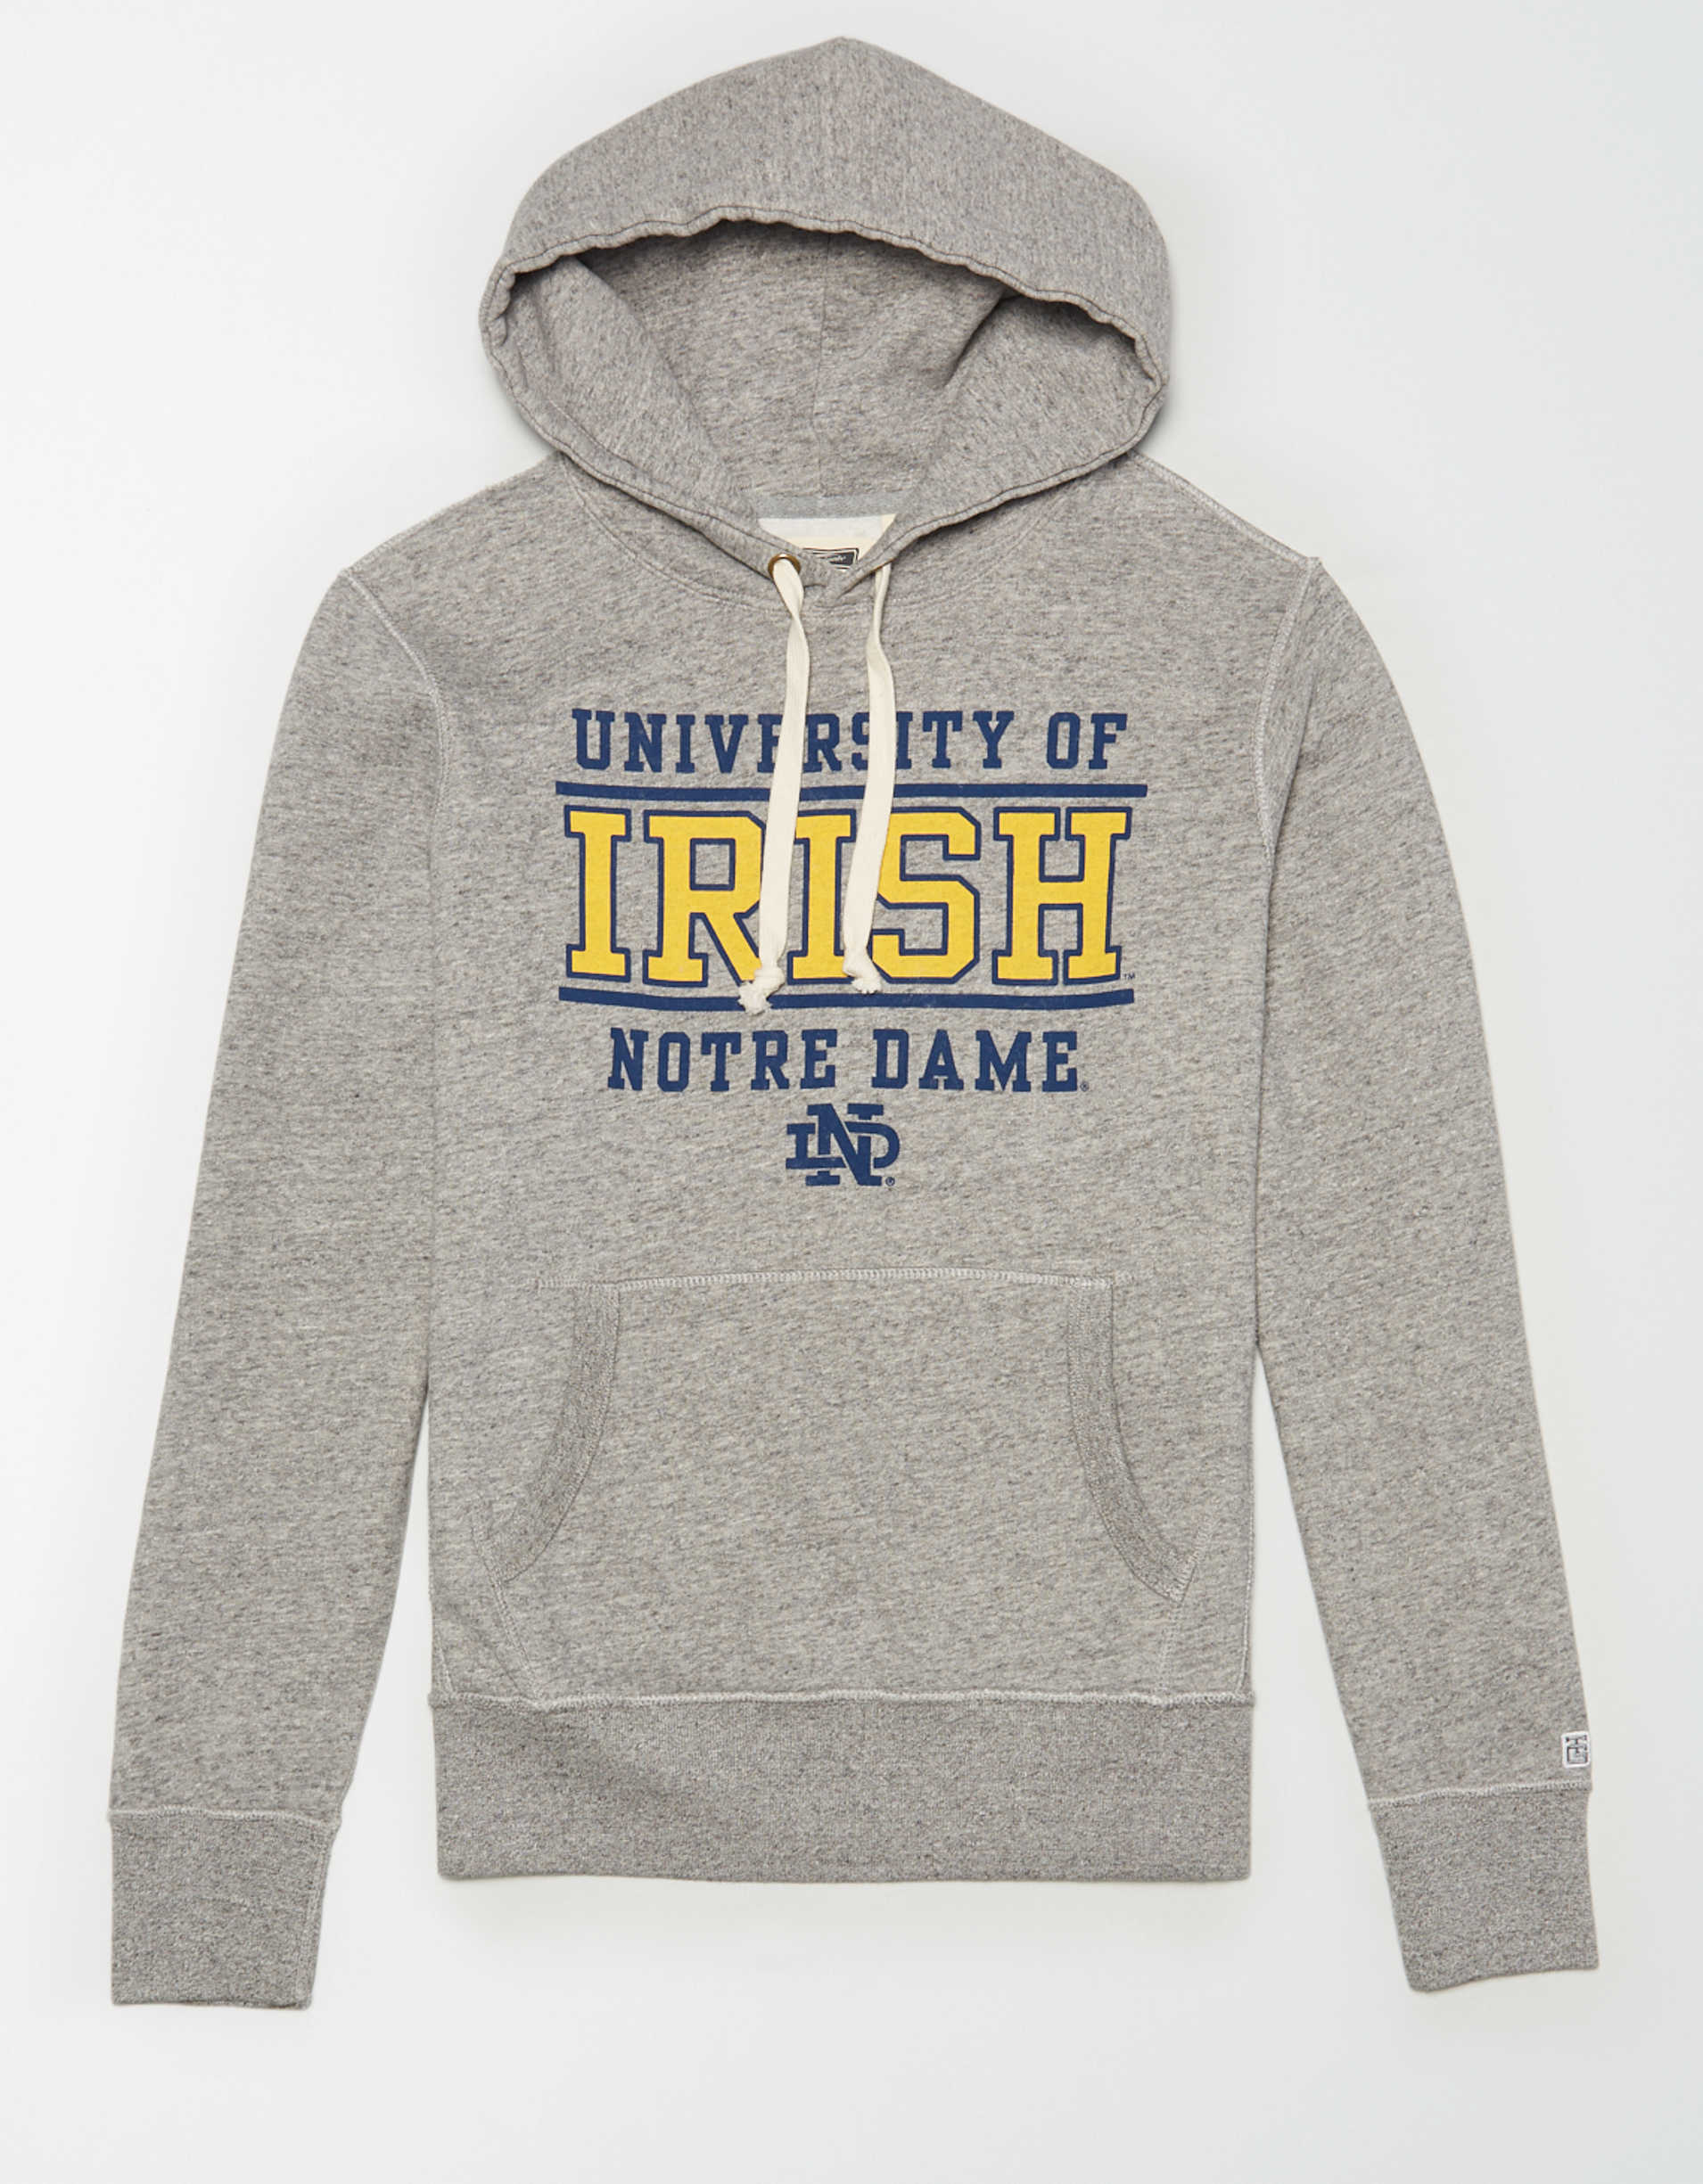 Tailgate Men's Notre Dame Irish Fleece Hoodie